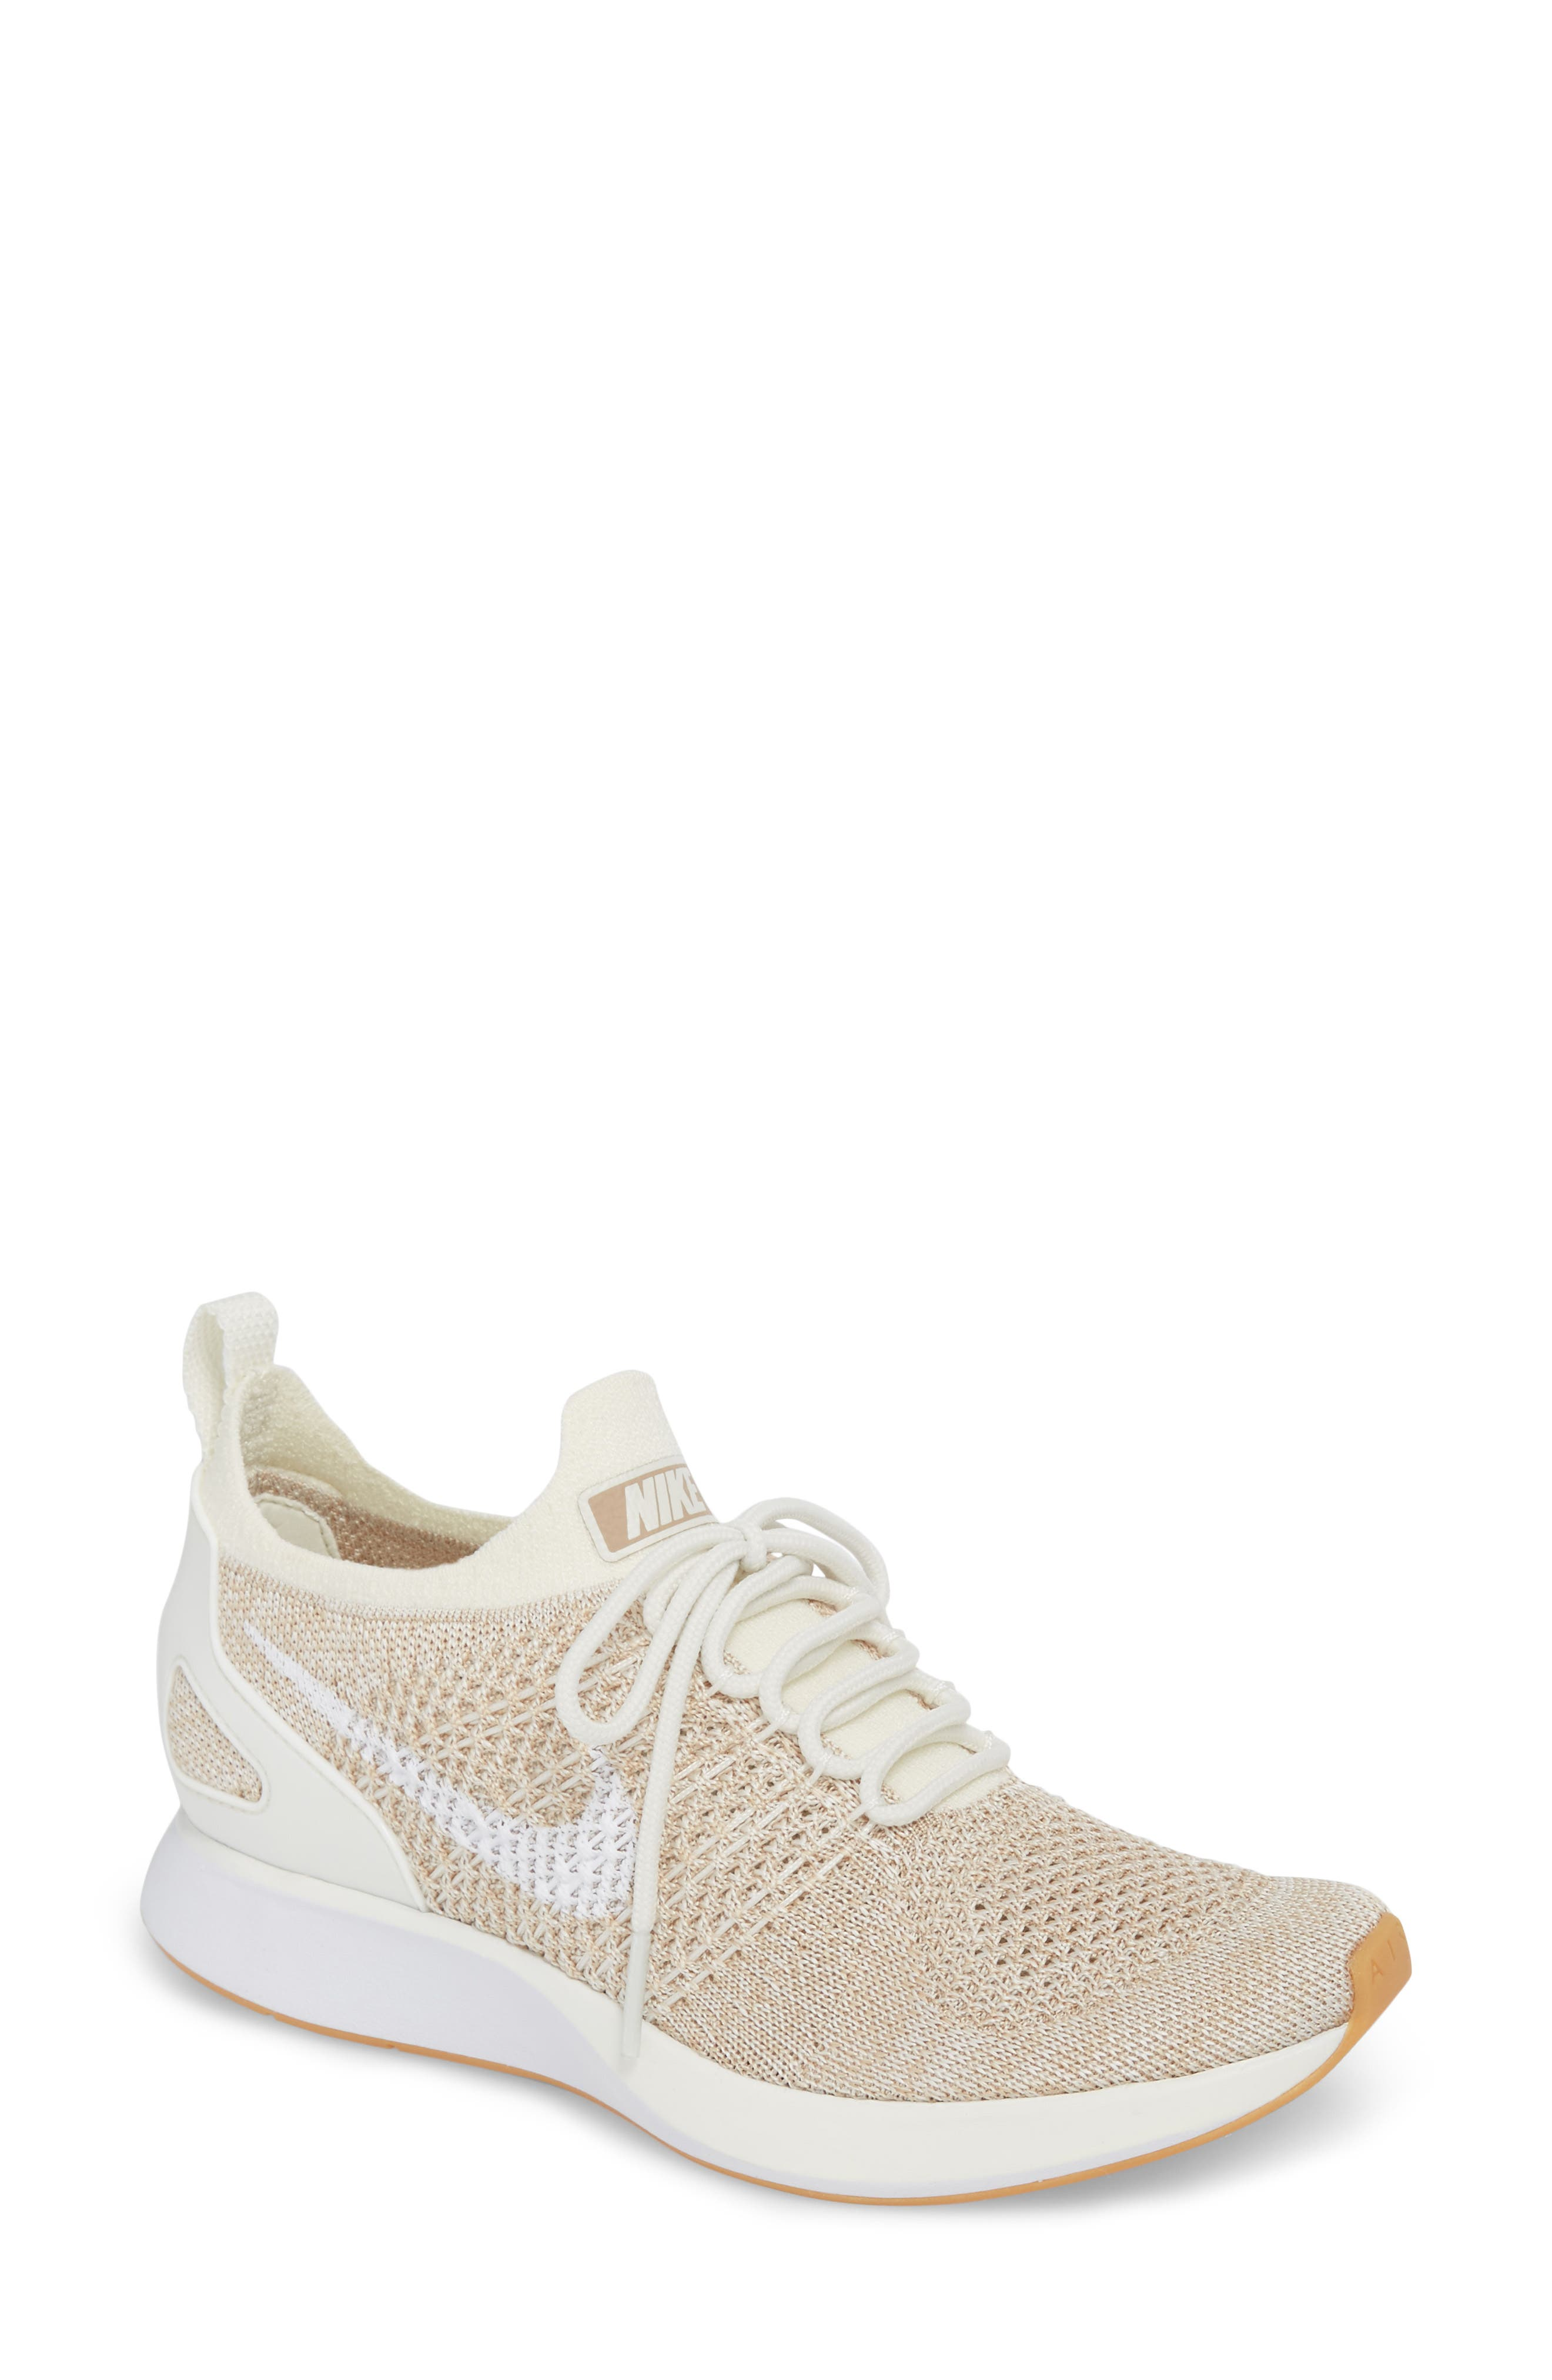 Air Zoom Mariah Flyknit Racer Sneaker,                             Main thumbnail 1, color,                             SAIL/ WHITE/ SAND